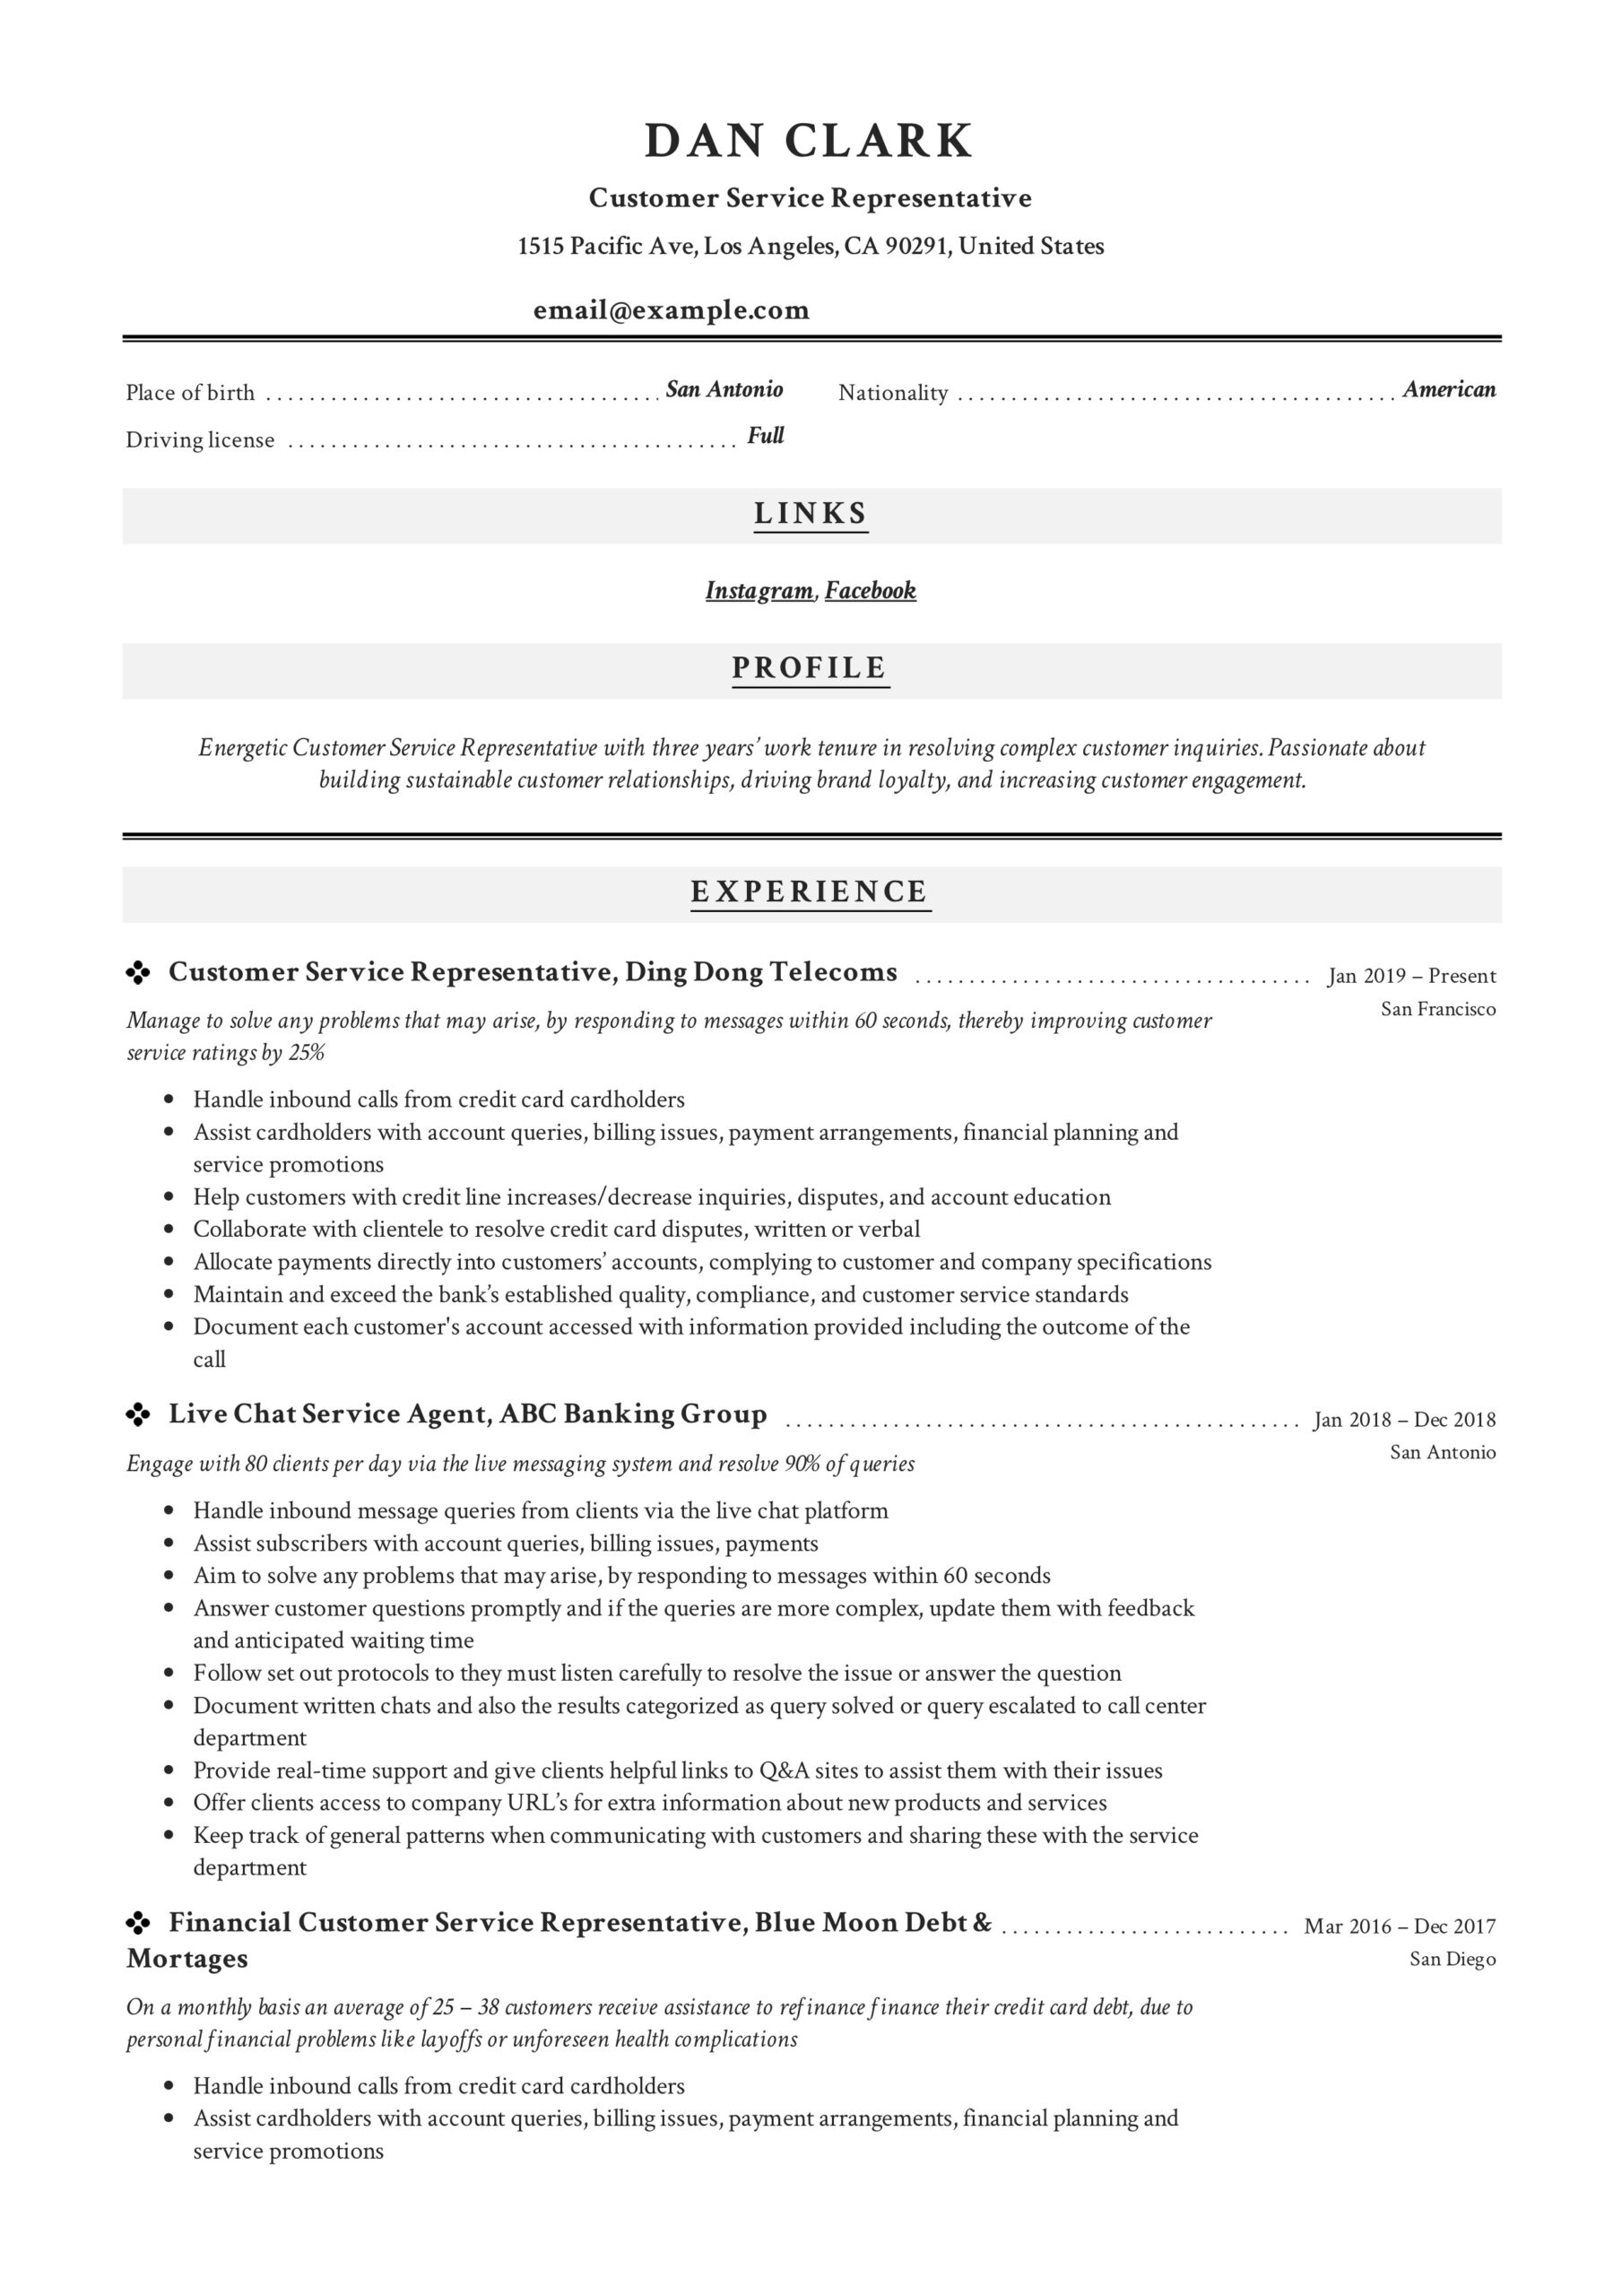 to customer service representative resume pdf samples remote work template objective for Resume Remote Work Resume Template